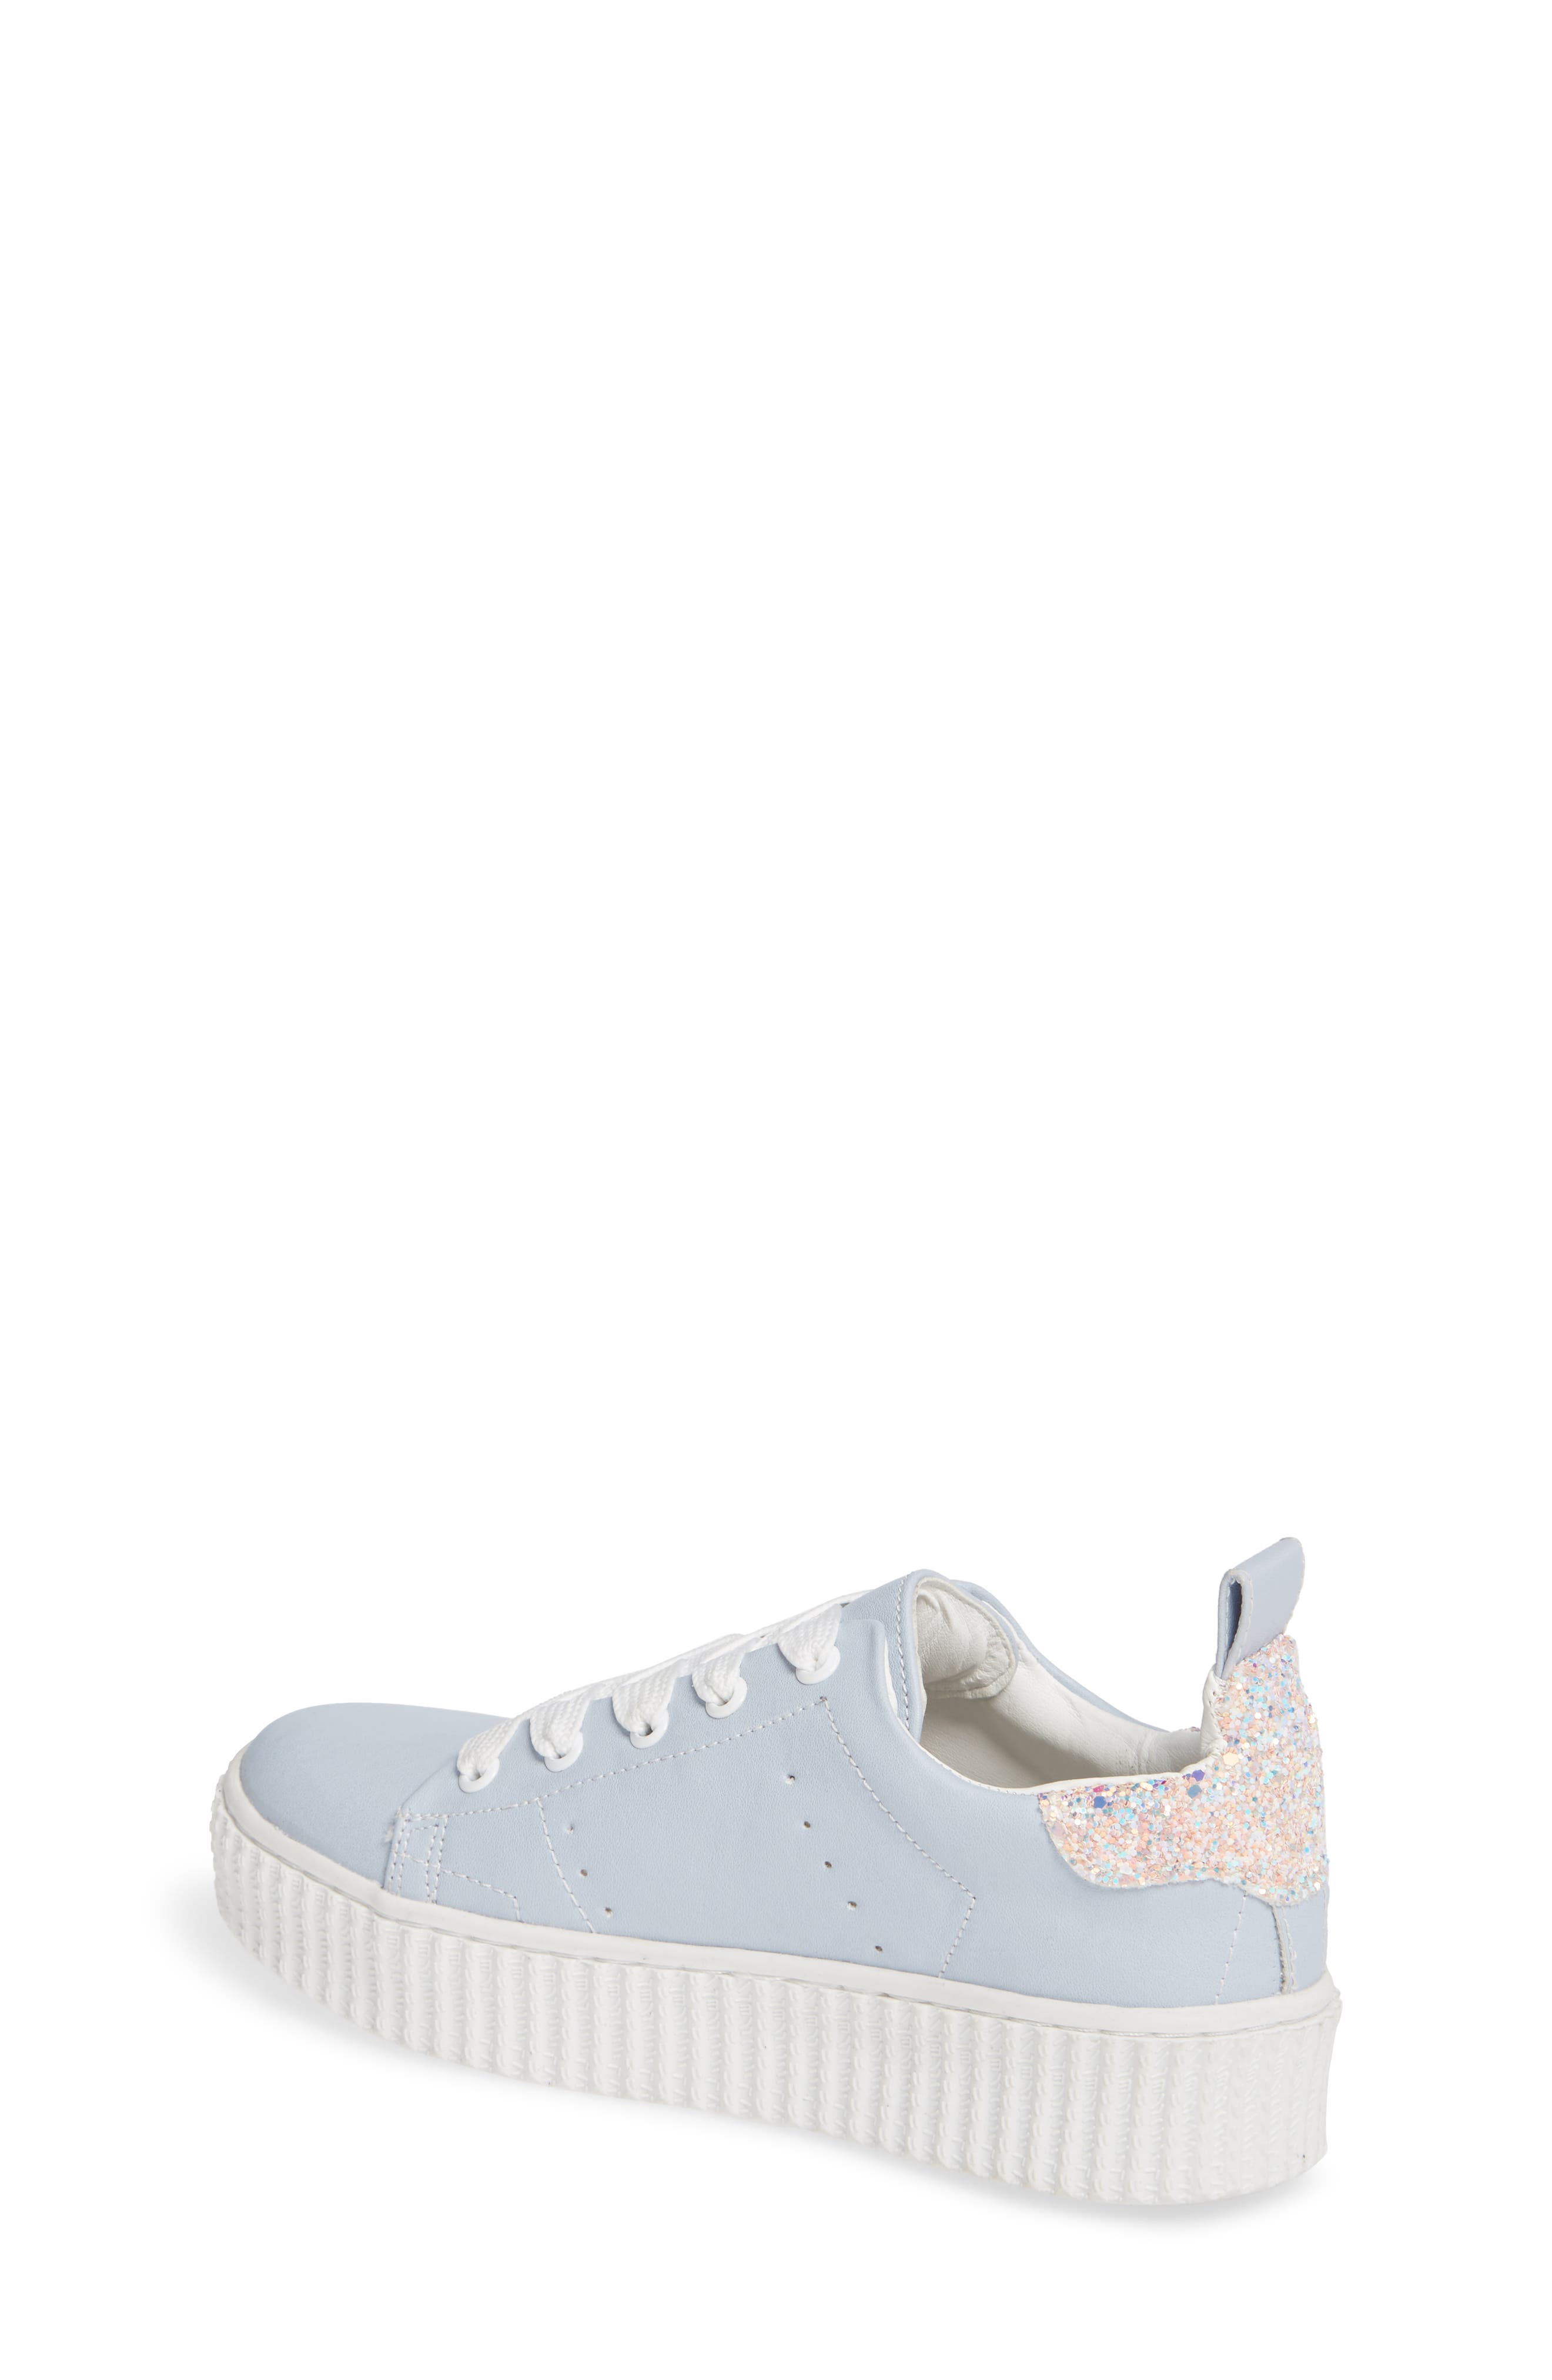 Wren Glitter Heel Sneaker,                             Alternate thumbnail 2, color,                             LIGHT BLUE